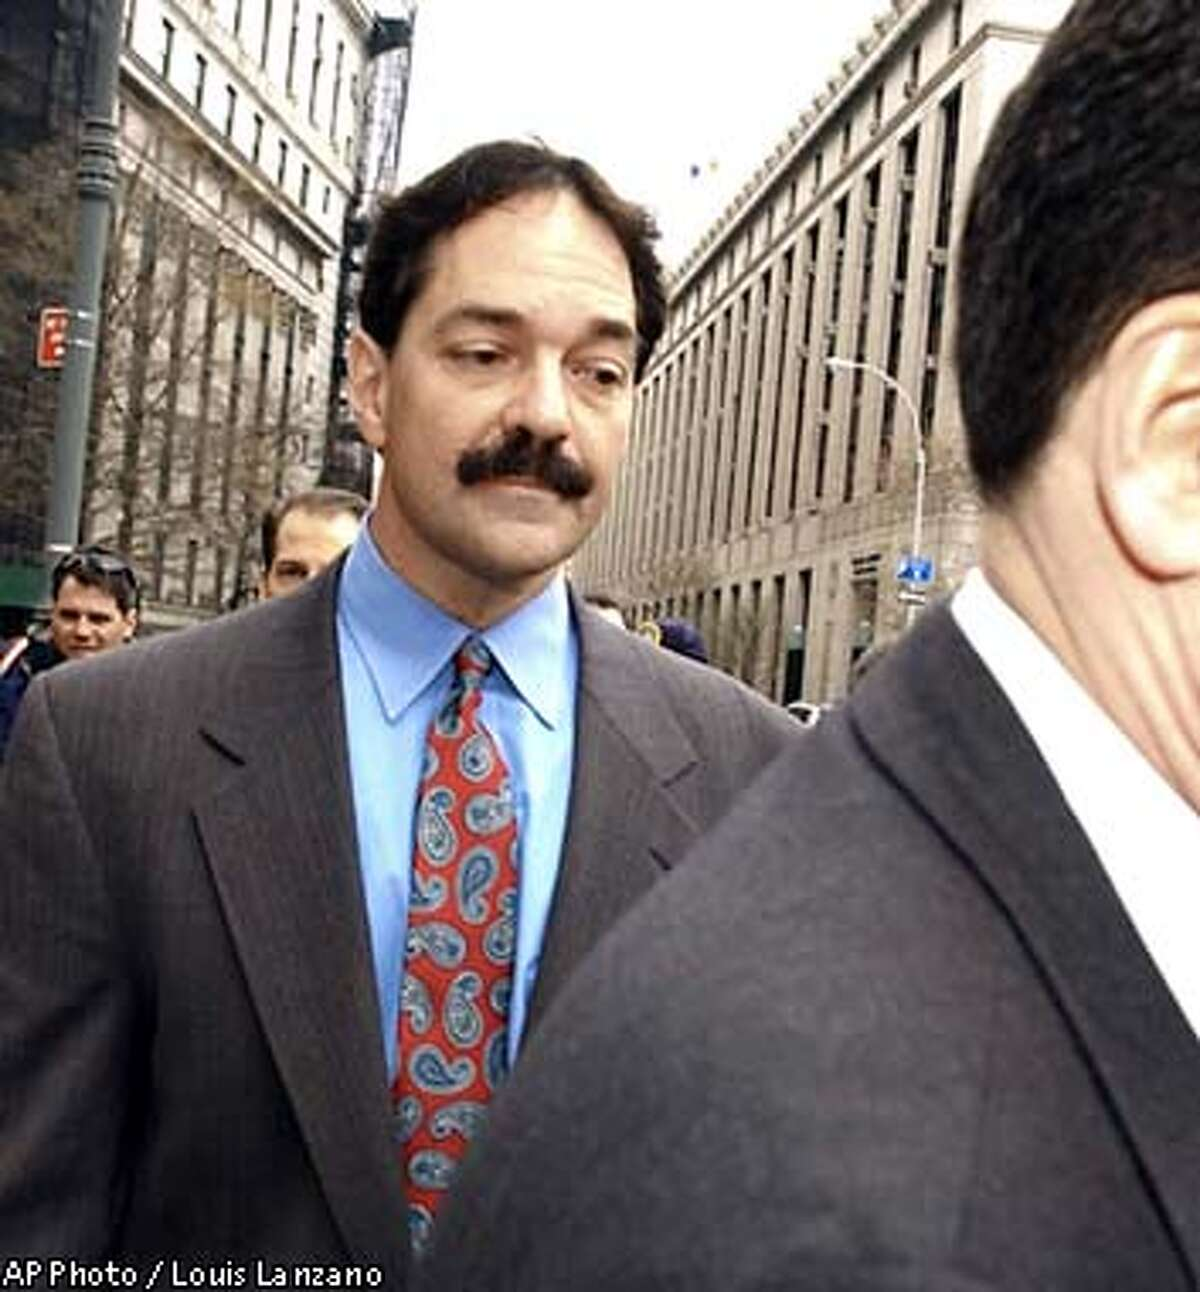 Frank Quattrone, a former investment banker with Credit Suisse First Boston, leaves Manhattan federal court in New York Wednesday, April 23, 2003. Quattrone was charged with obstructing investigations into CSFB's questionable initial public offering practices and conflicts of interest between stock research and banking. (AP Photo / Louis Lanzano)